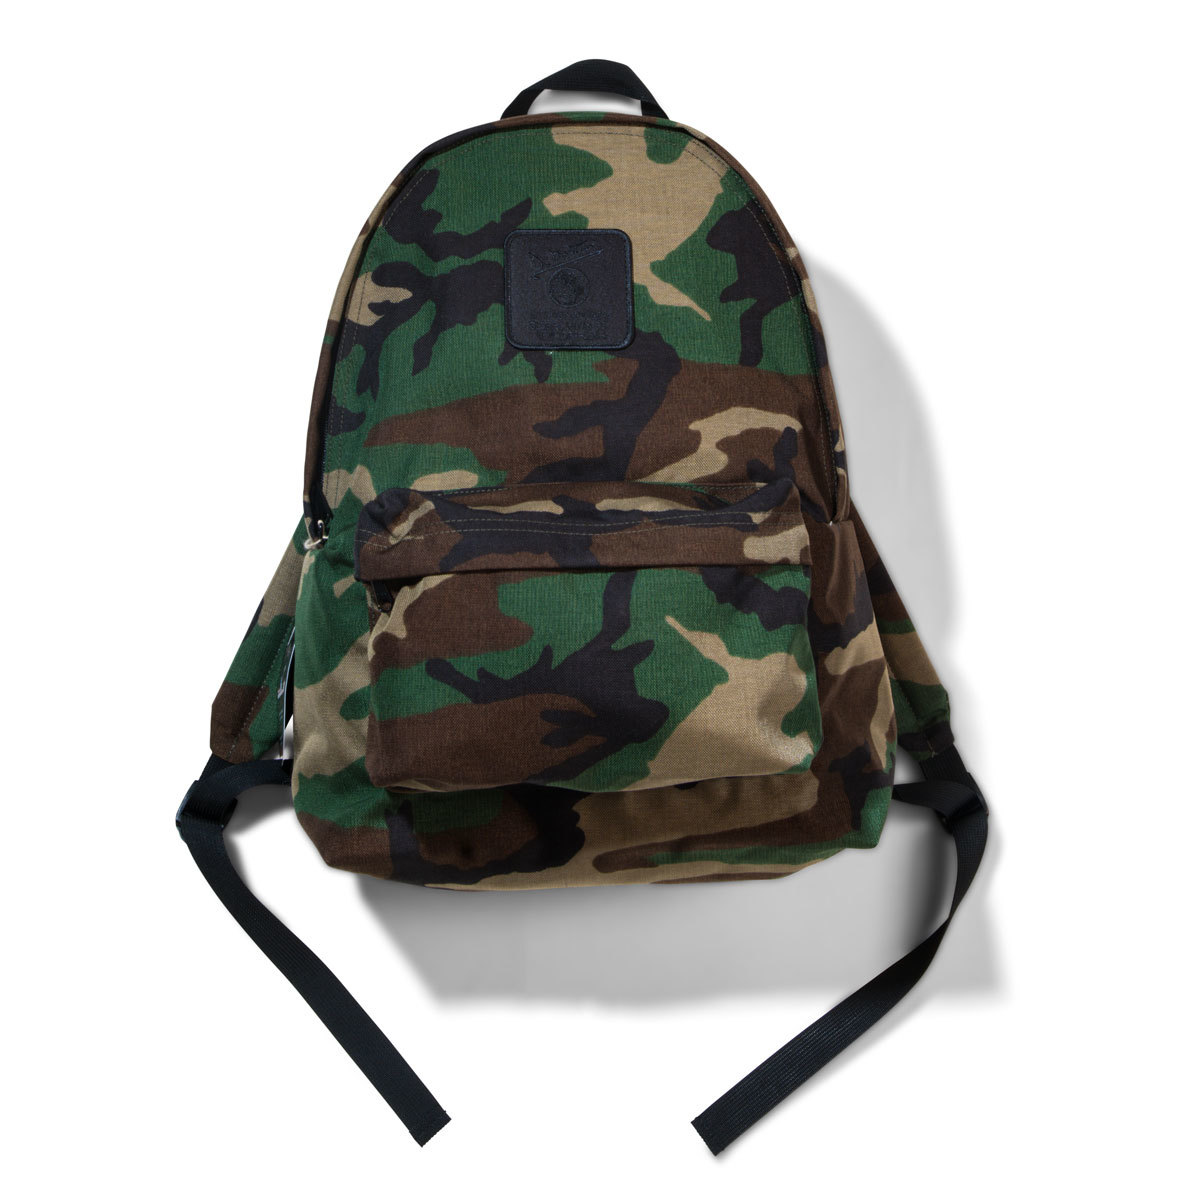 BACKPACK_GREEN_FRONT.jpg